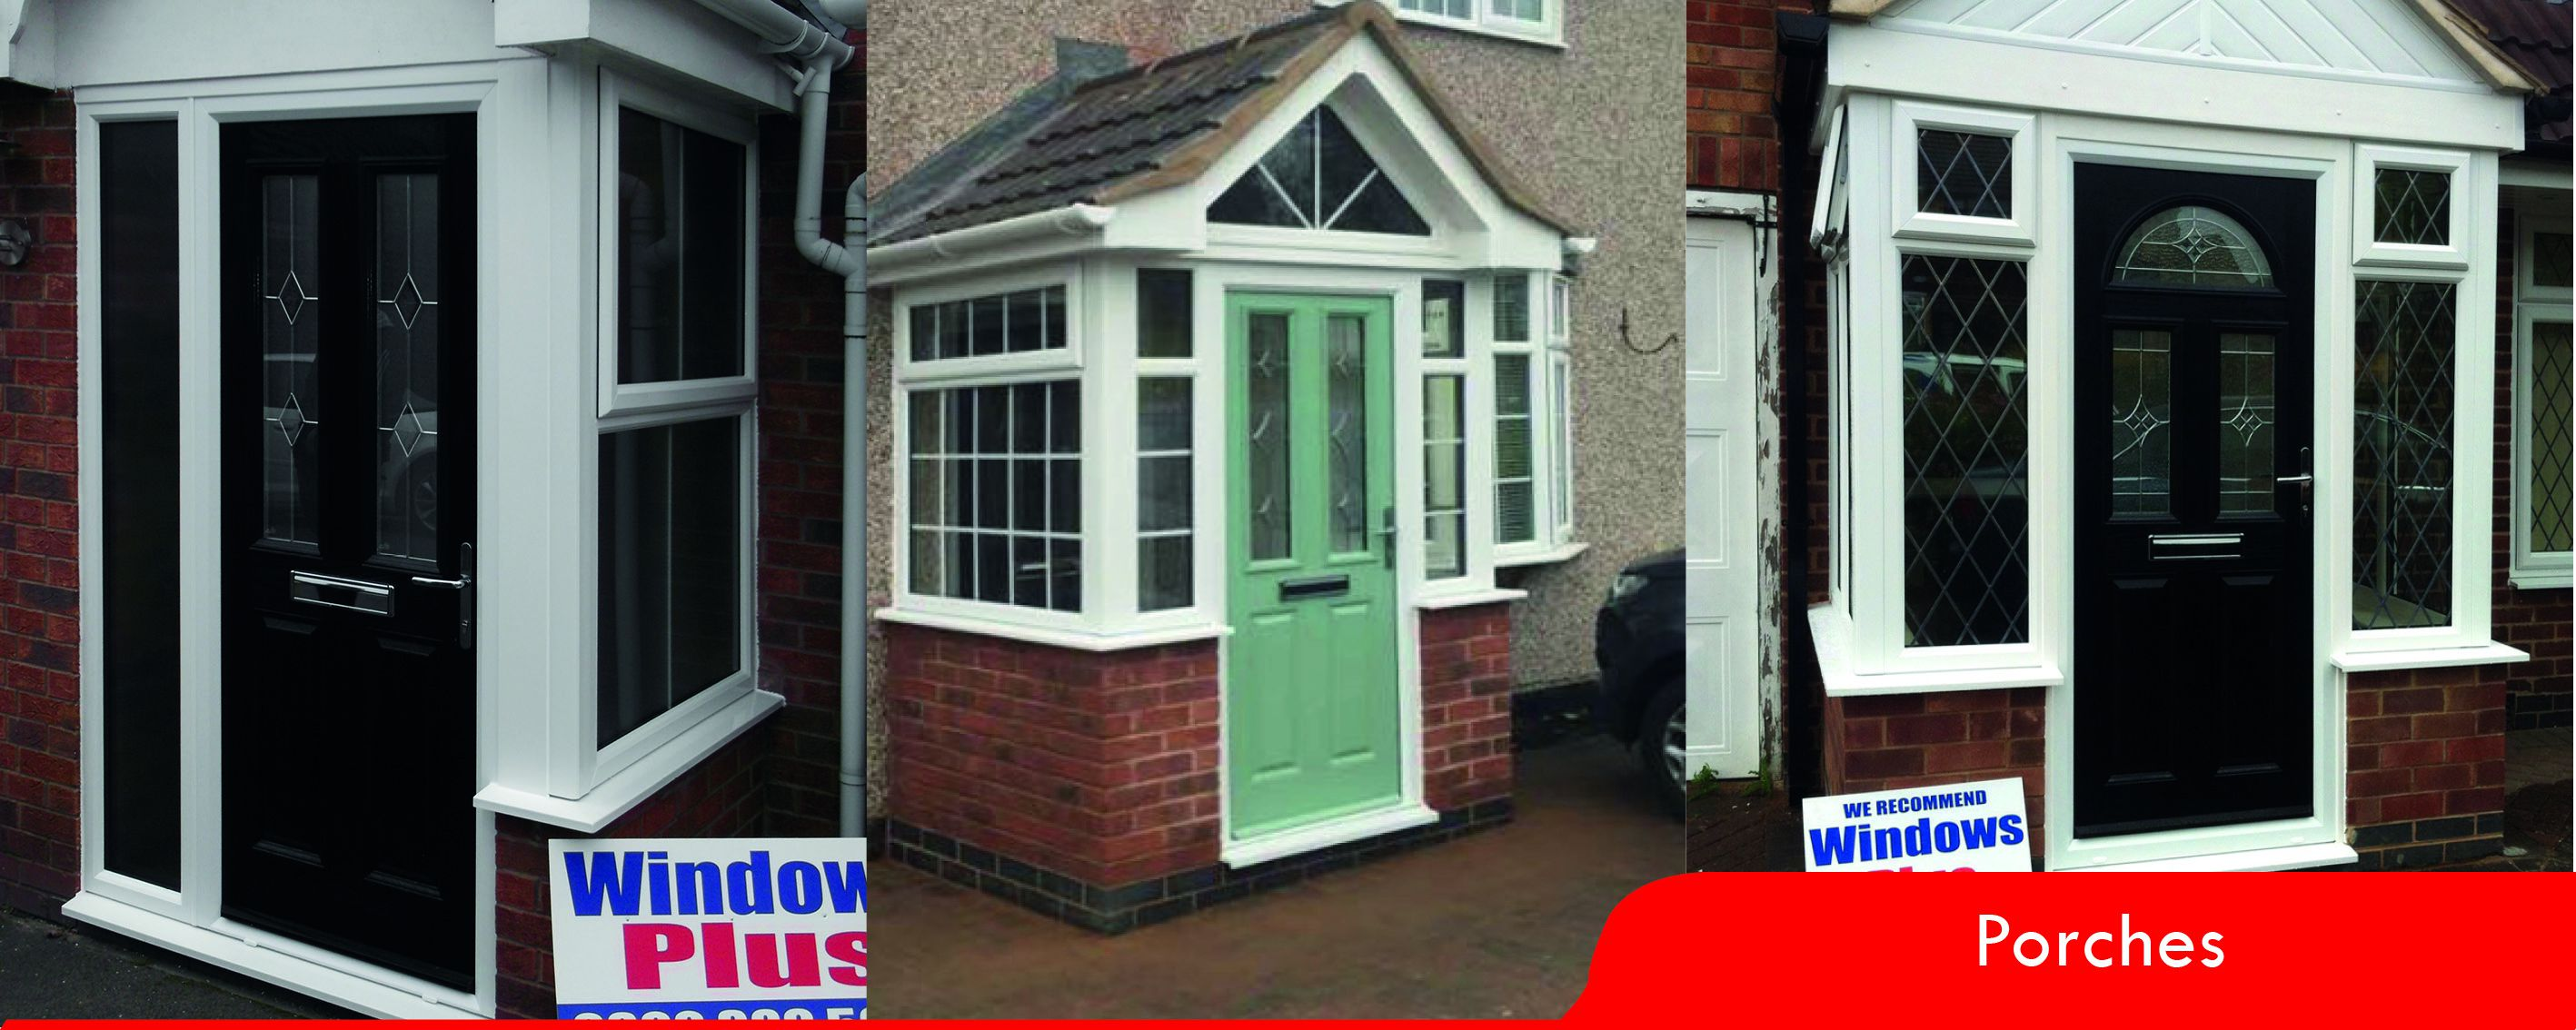 Porches-Coventry-Nuneaton-Rugby